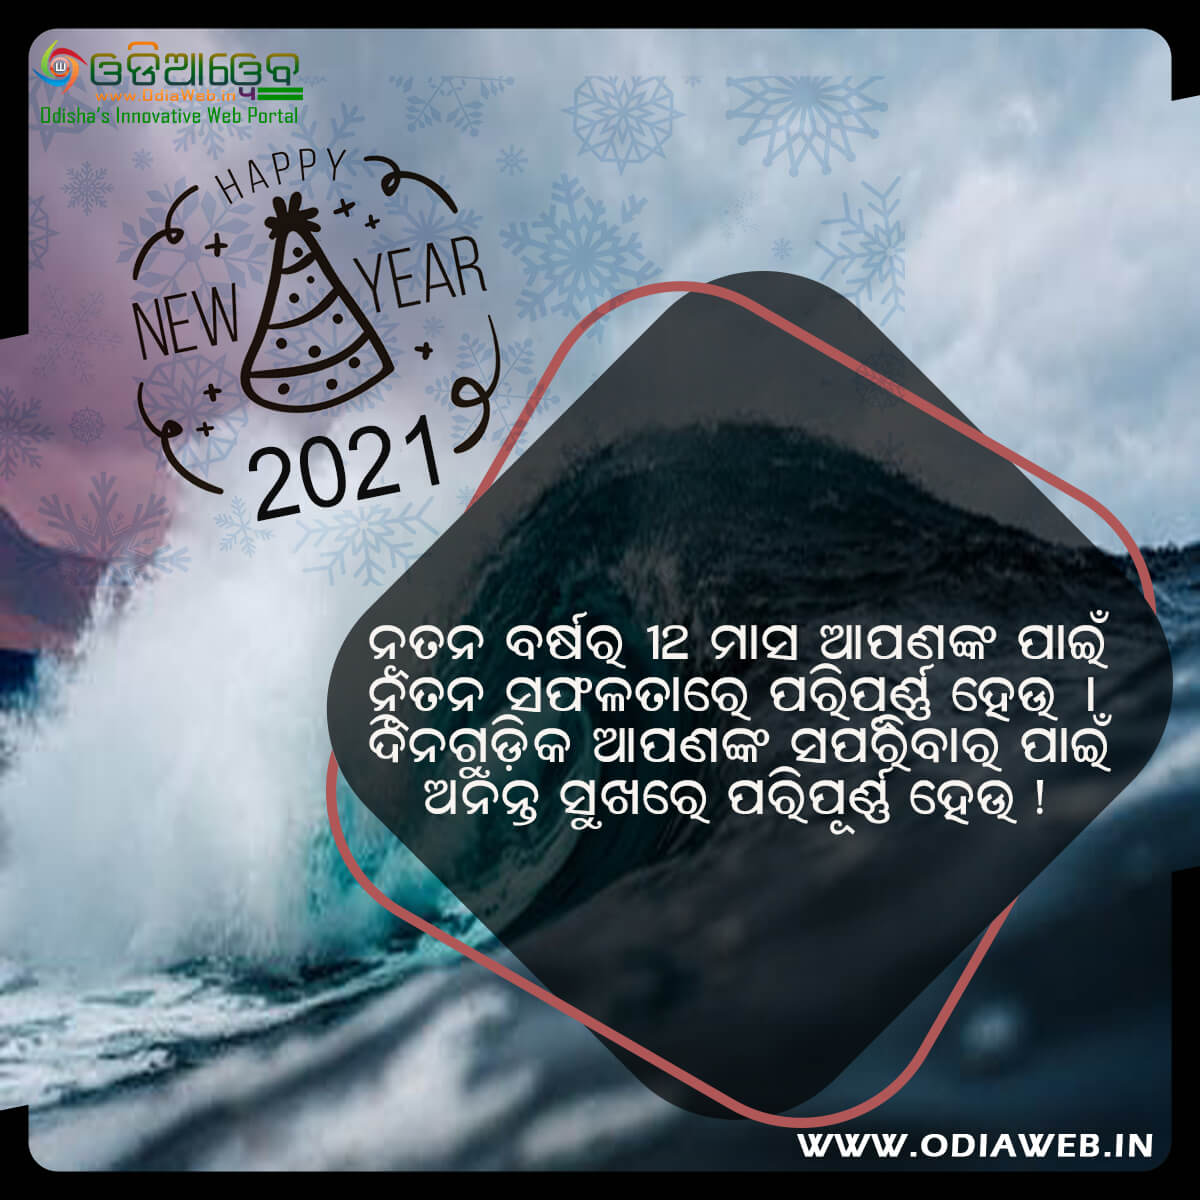 Happy New Year 2021 Wishes Odia (8)